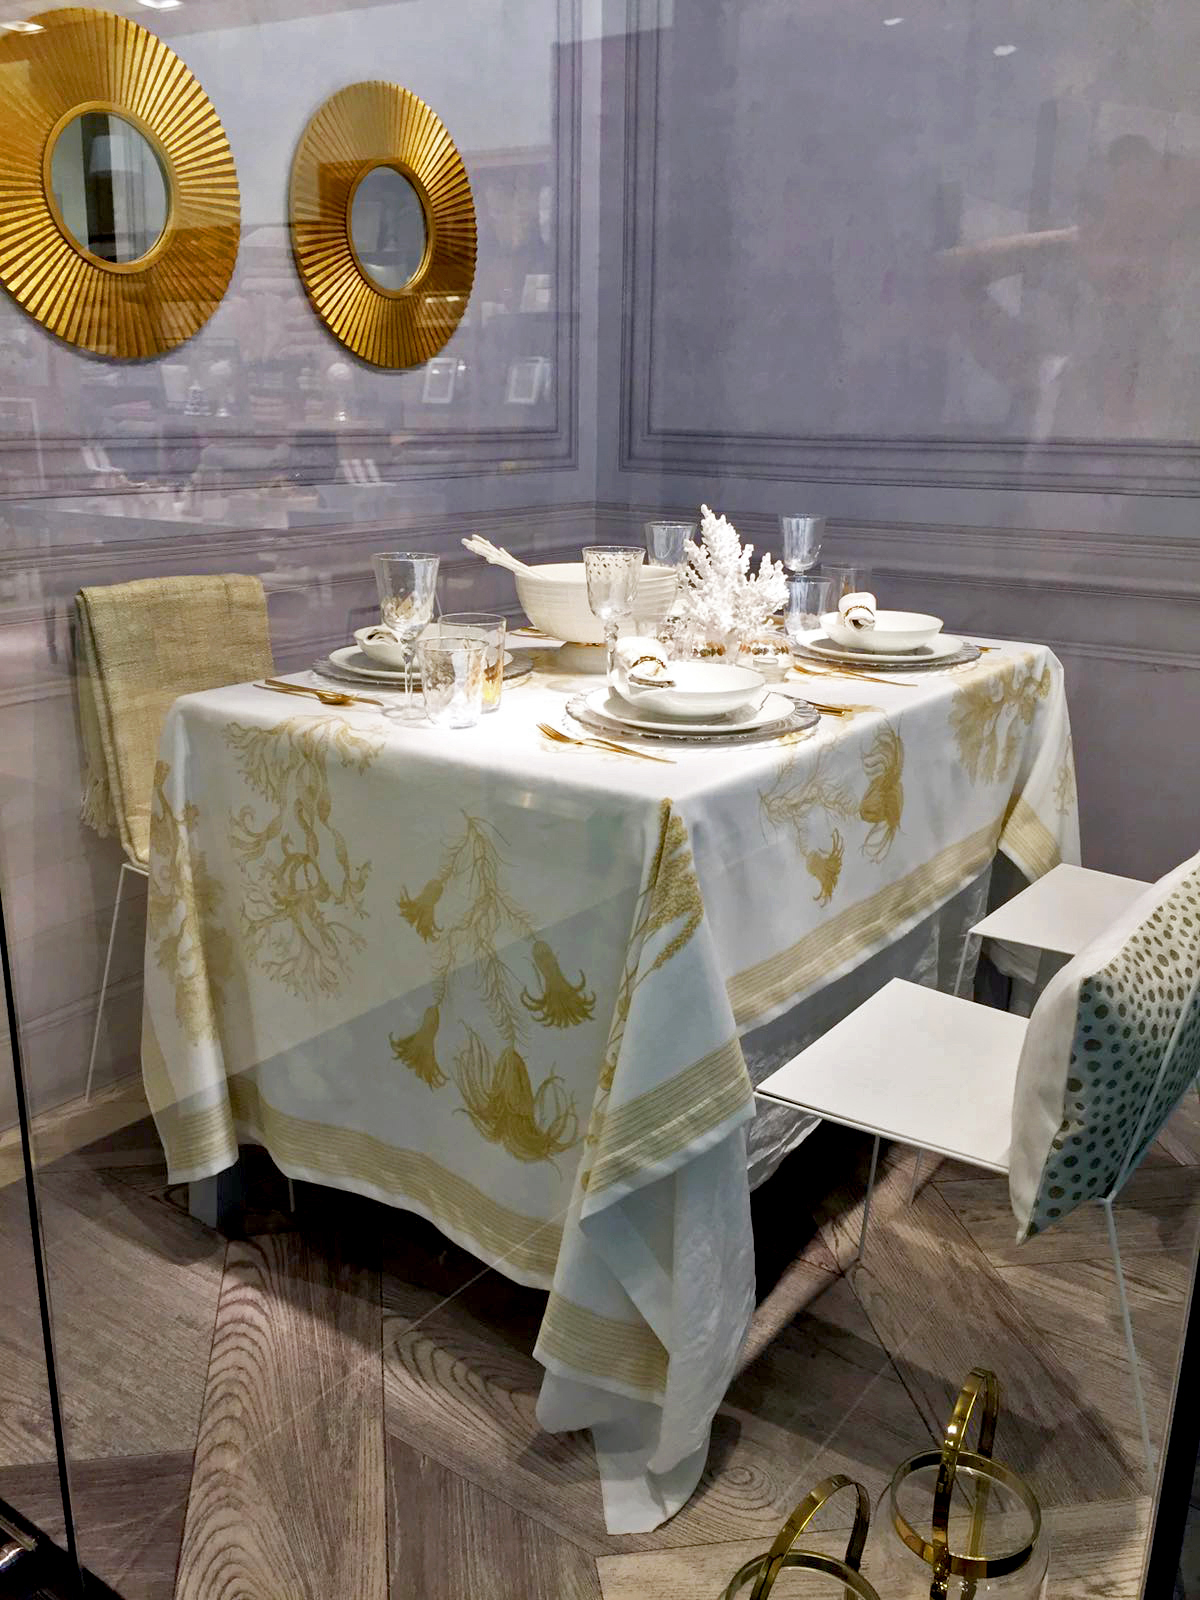 zara home catalogue locations clothing bedroom spring ideas locator room decor trending mango usa gold coral tablecloth table setting accent vase benedict white lacquer side